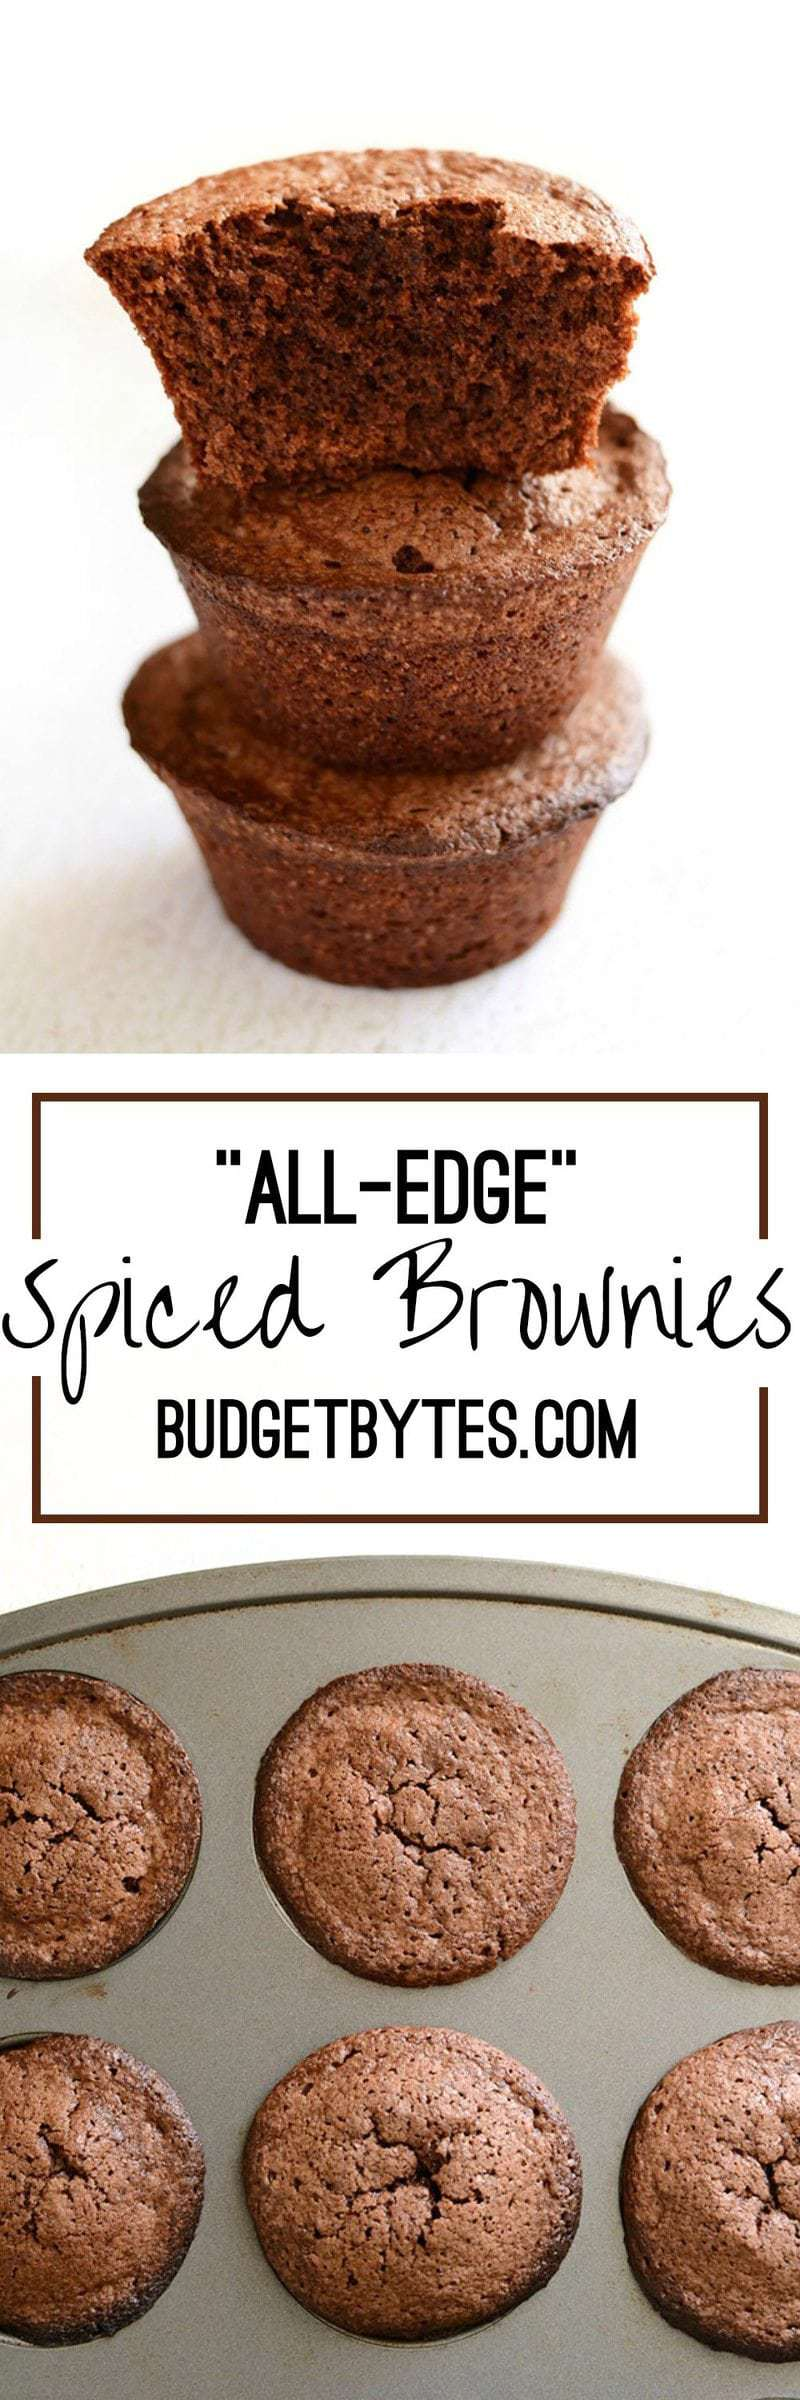 All Edge Spiced Brownies Budget Bytes